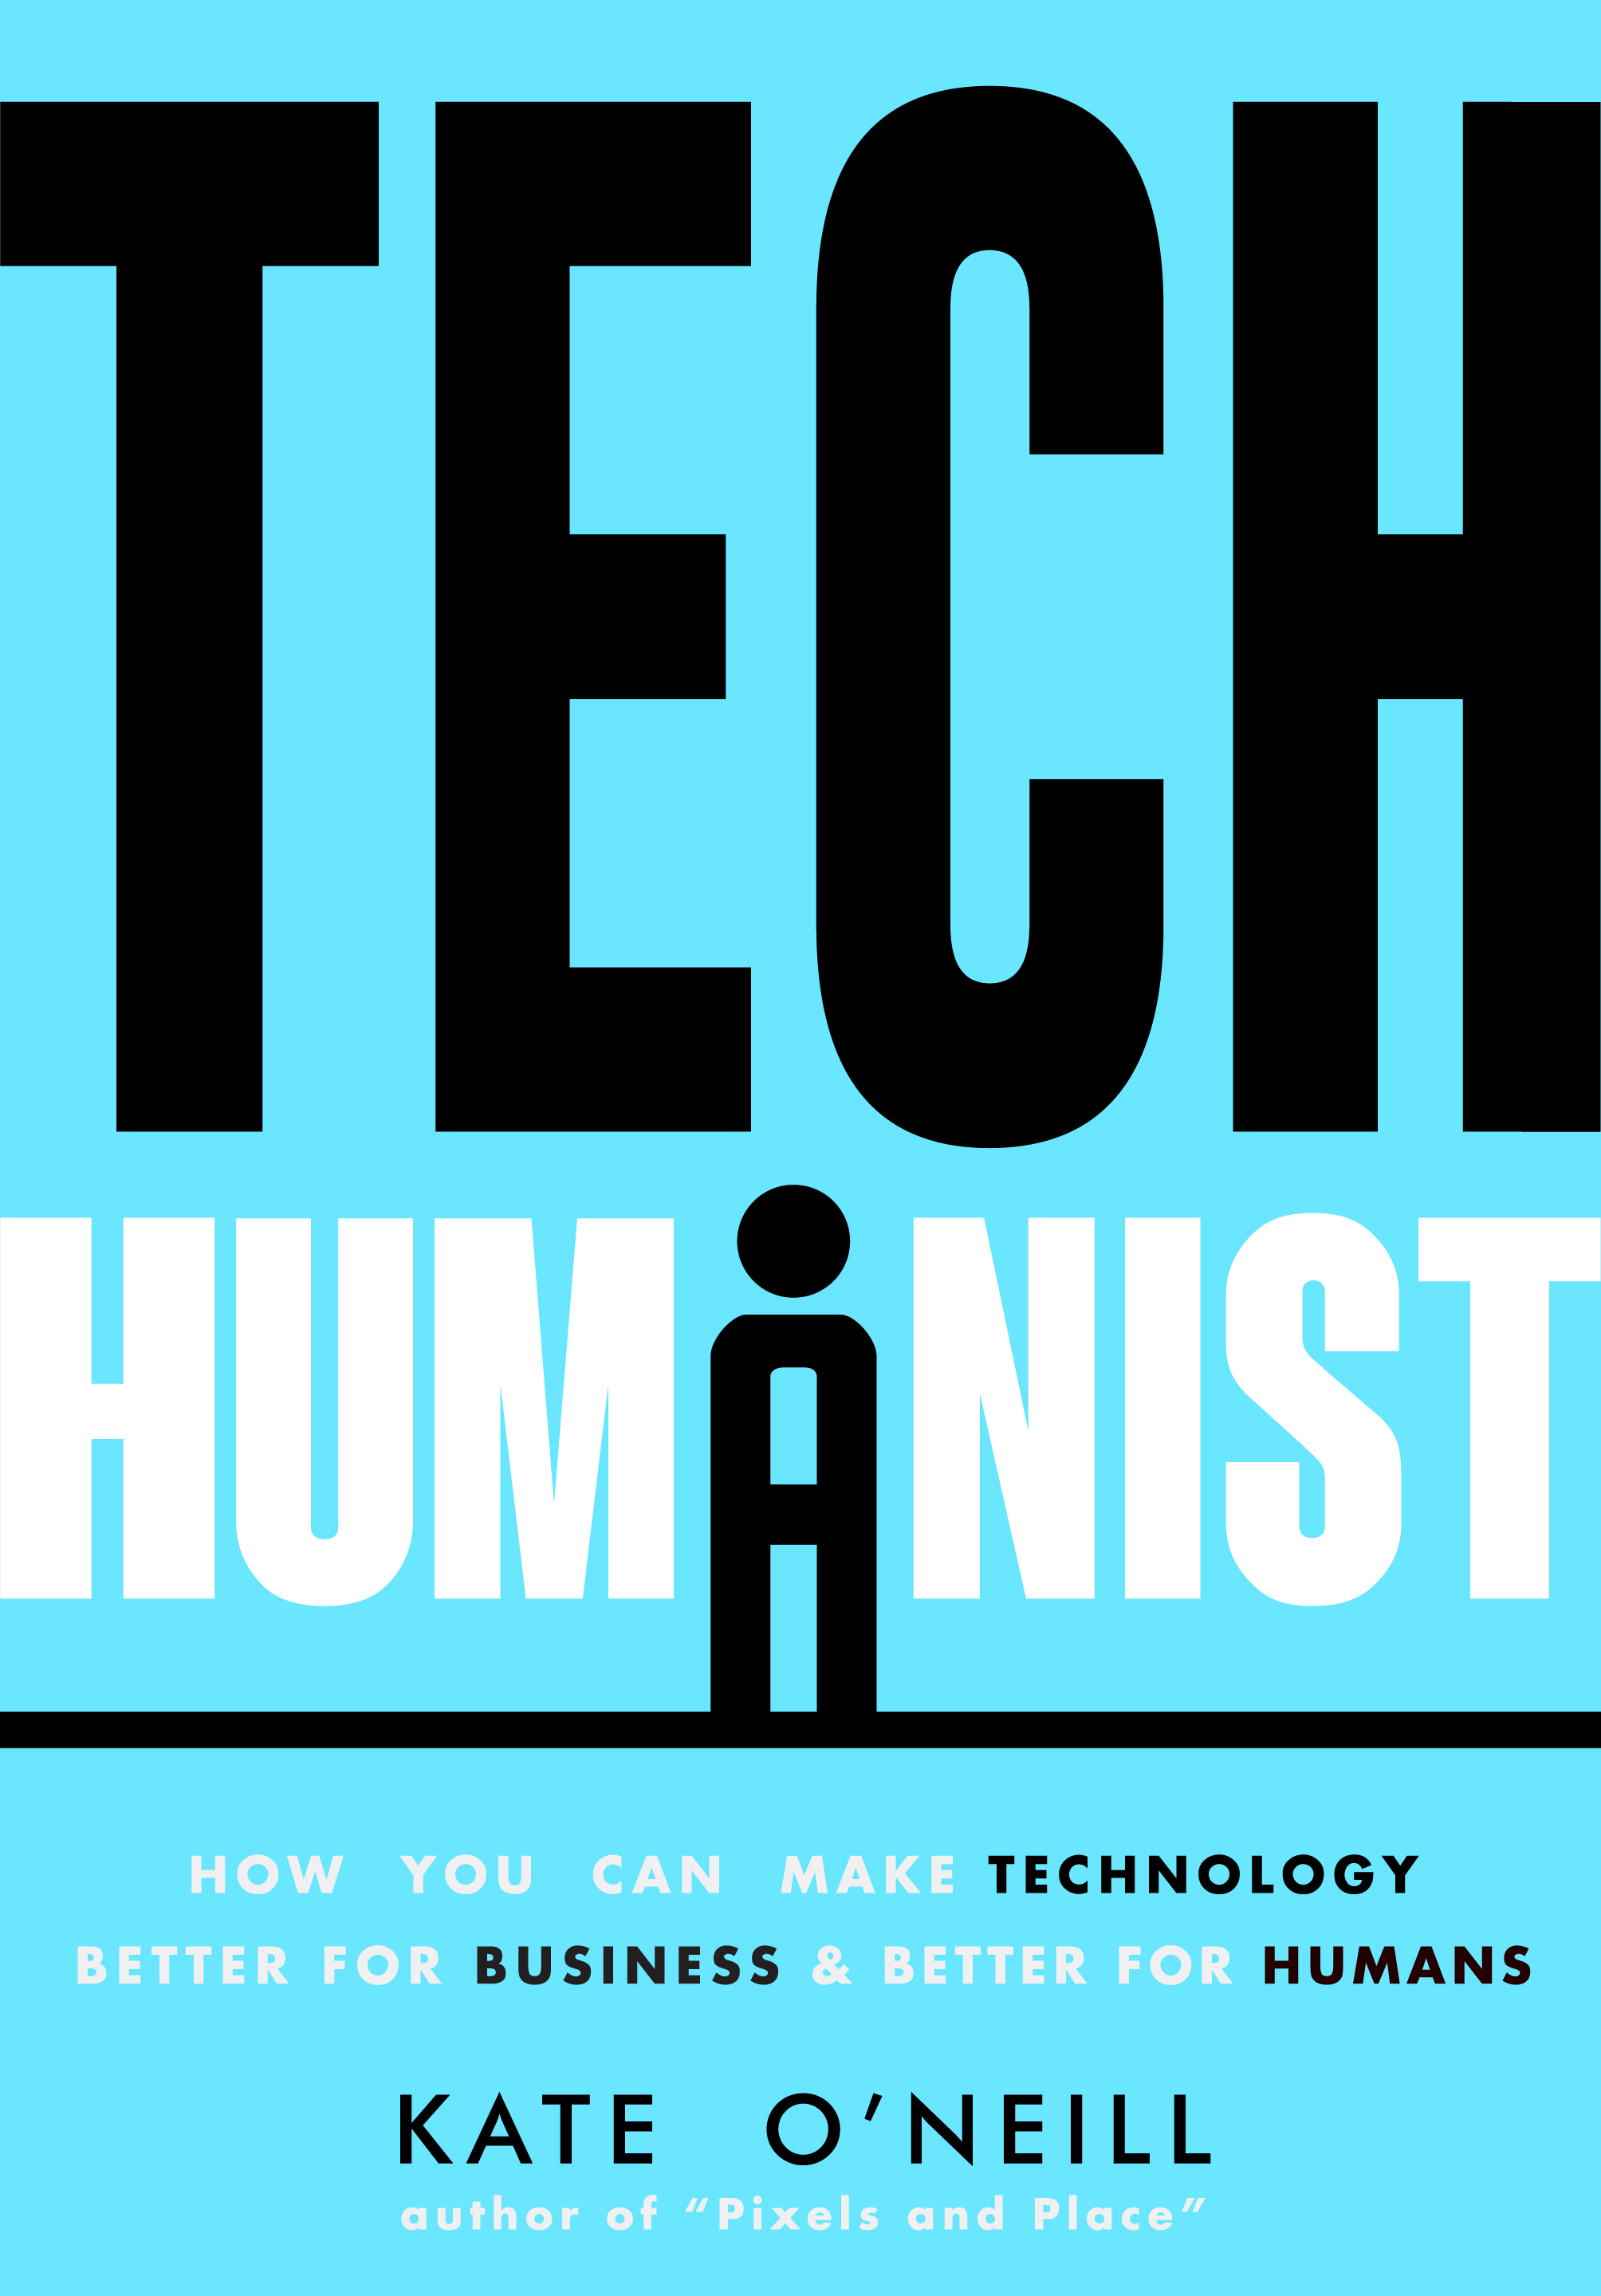 Tech Humanist front cover